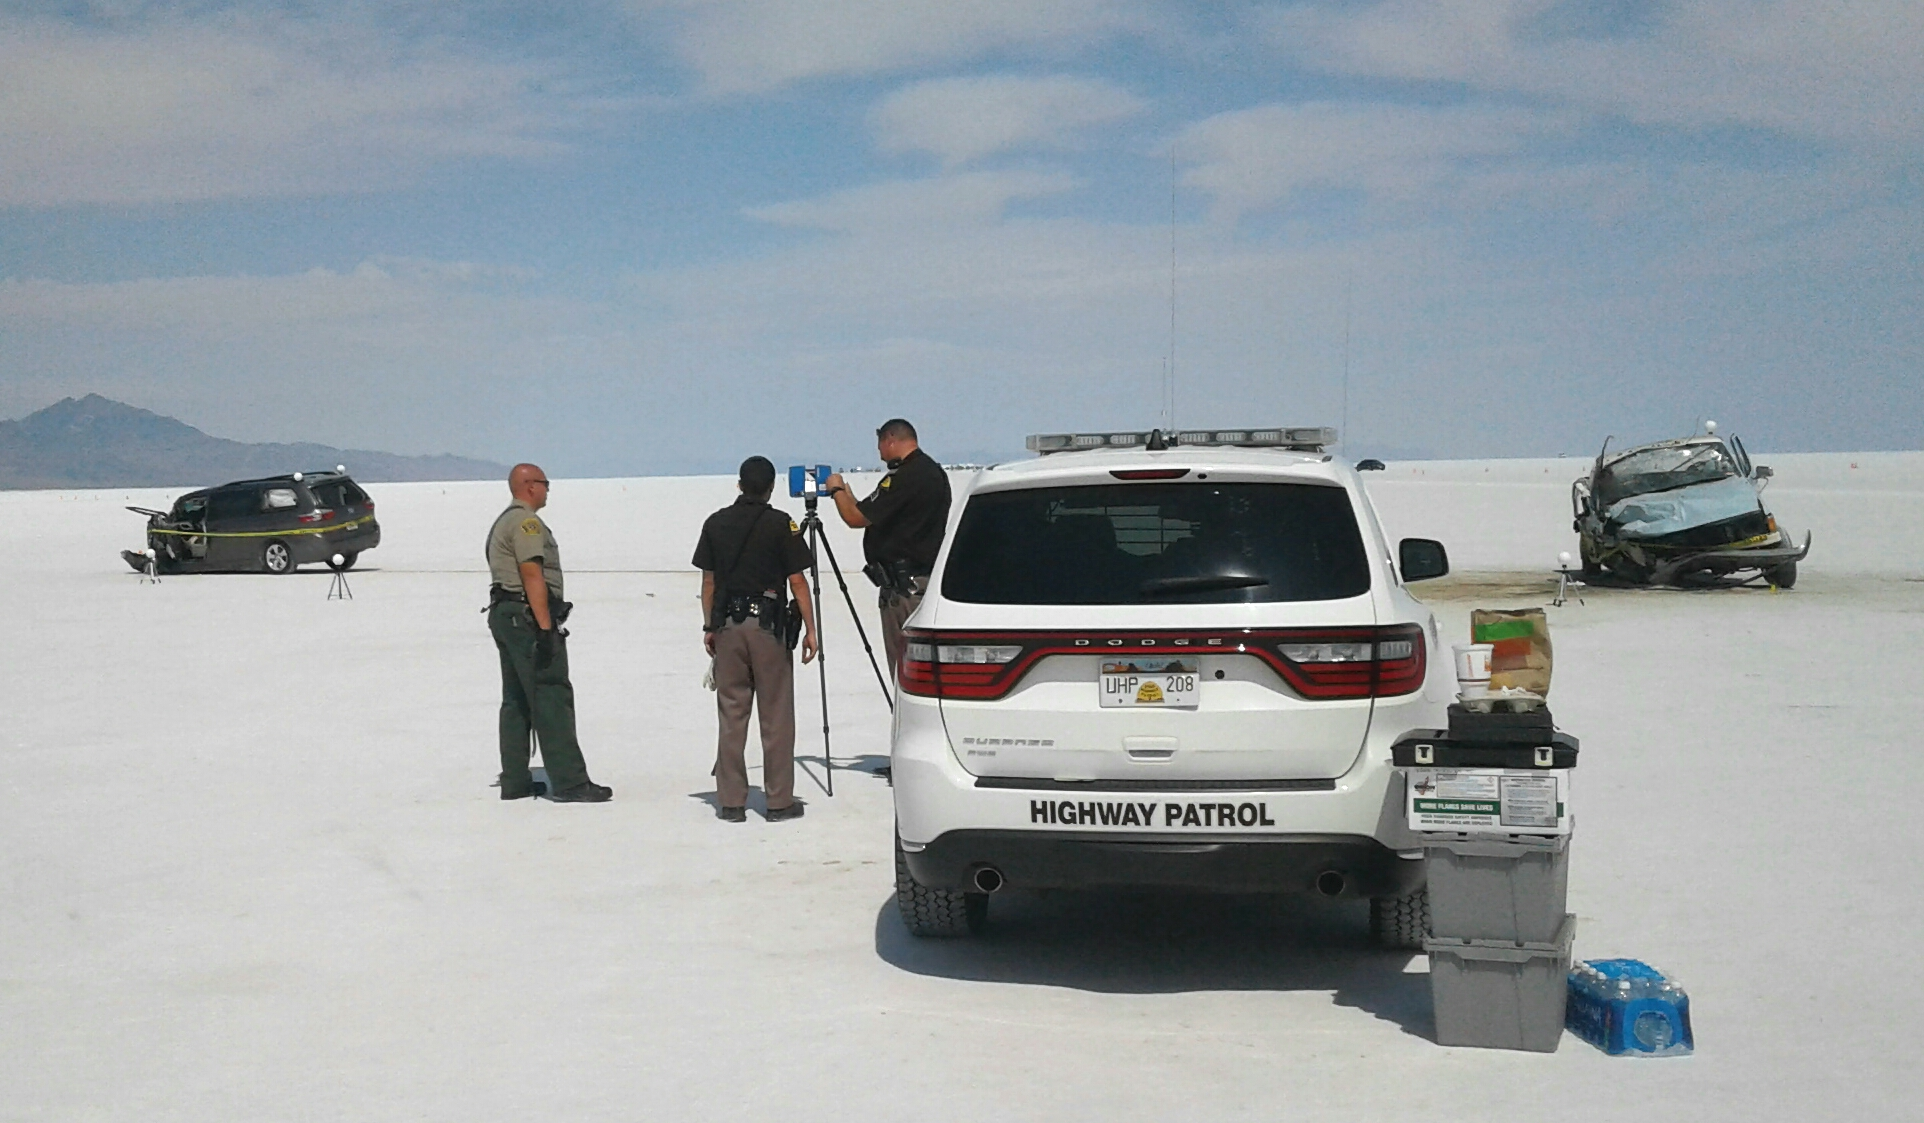 Update Man Who Died In Accident At Bonneville Salt Flats